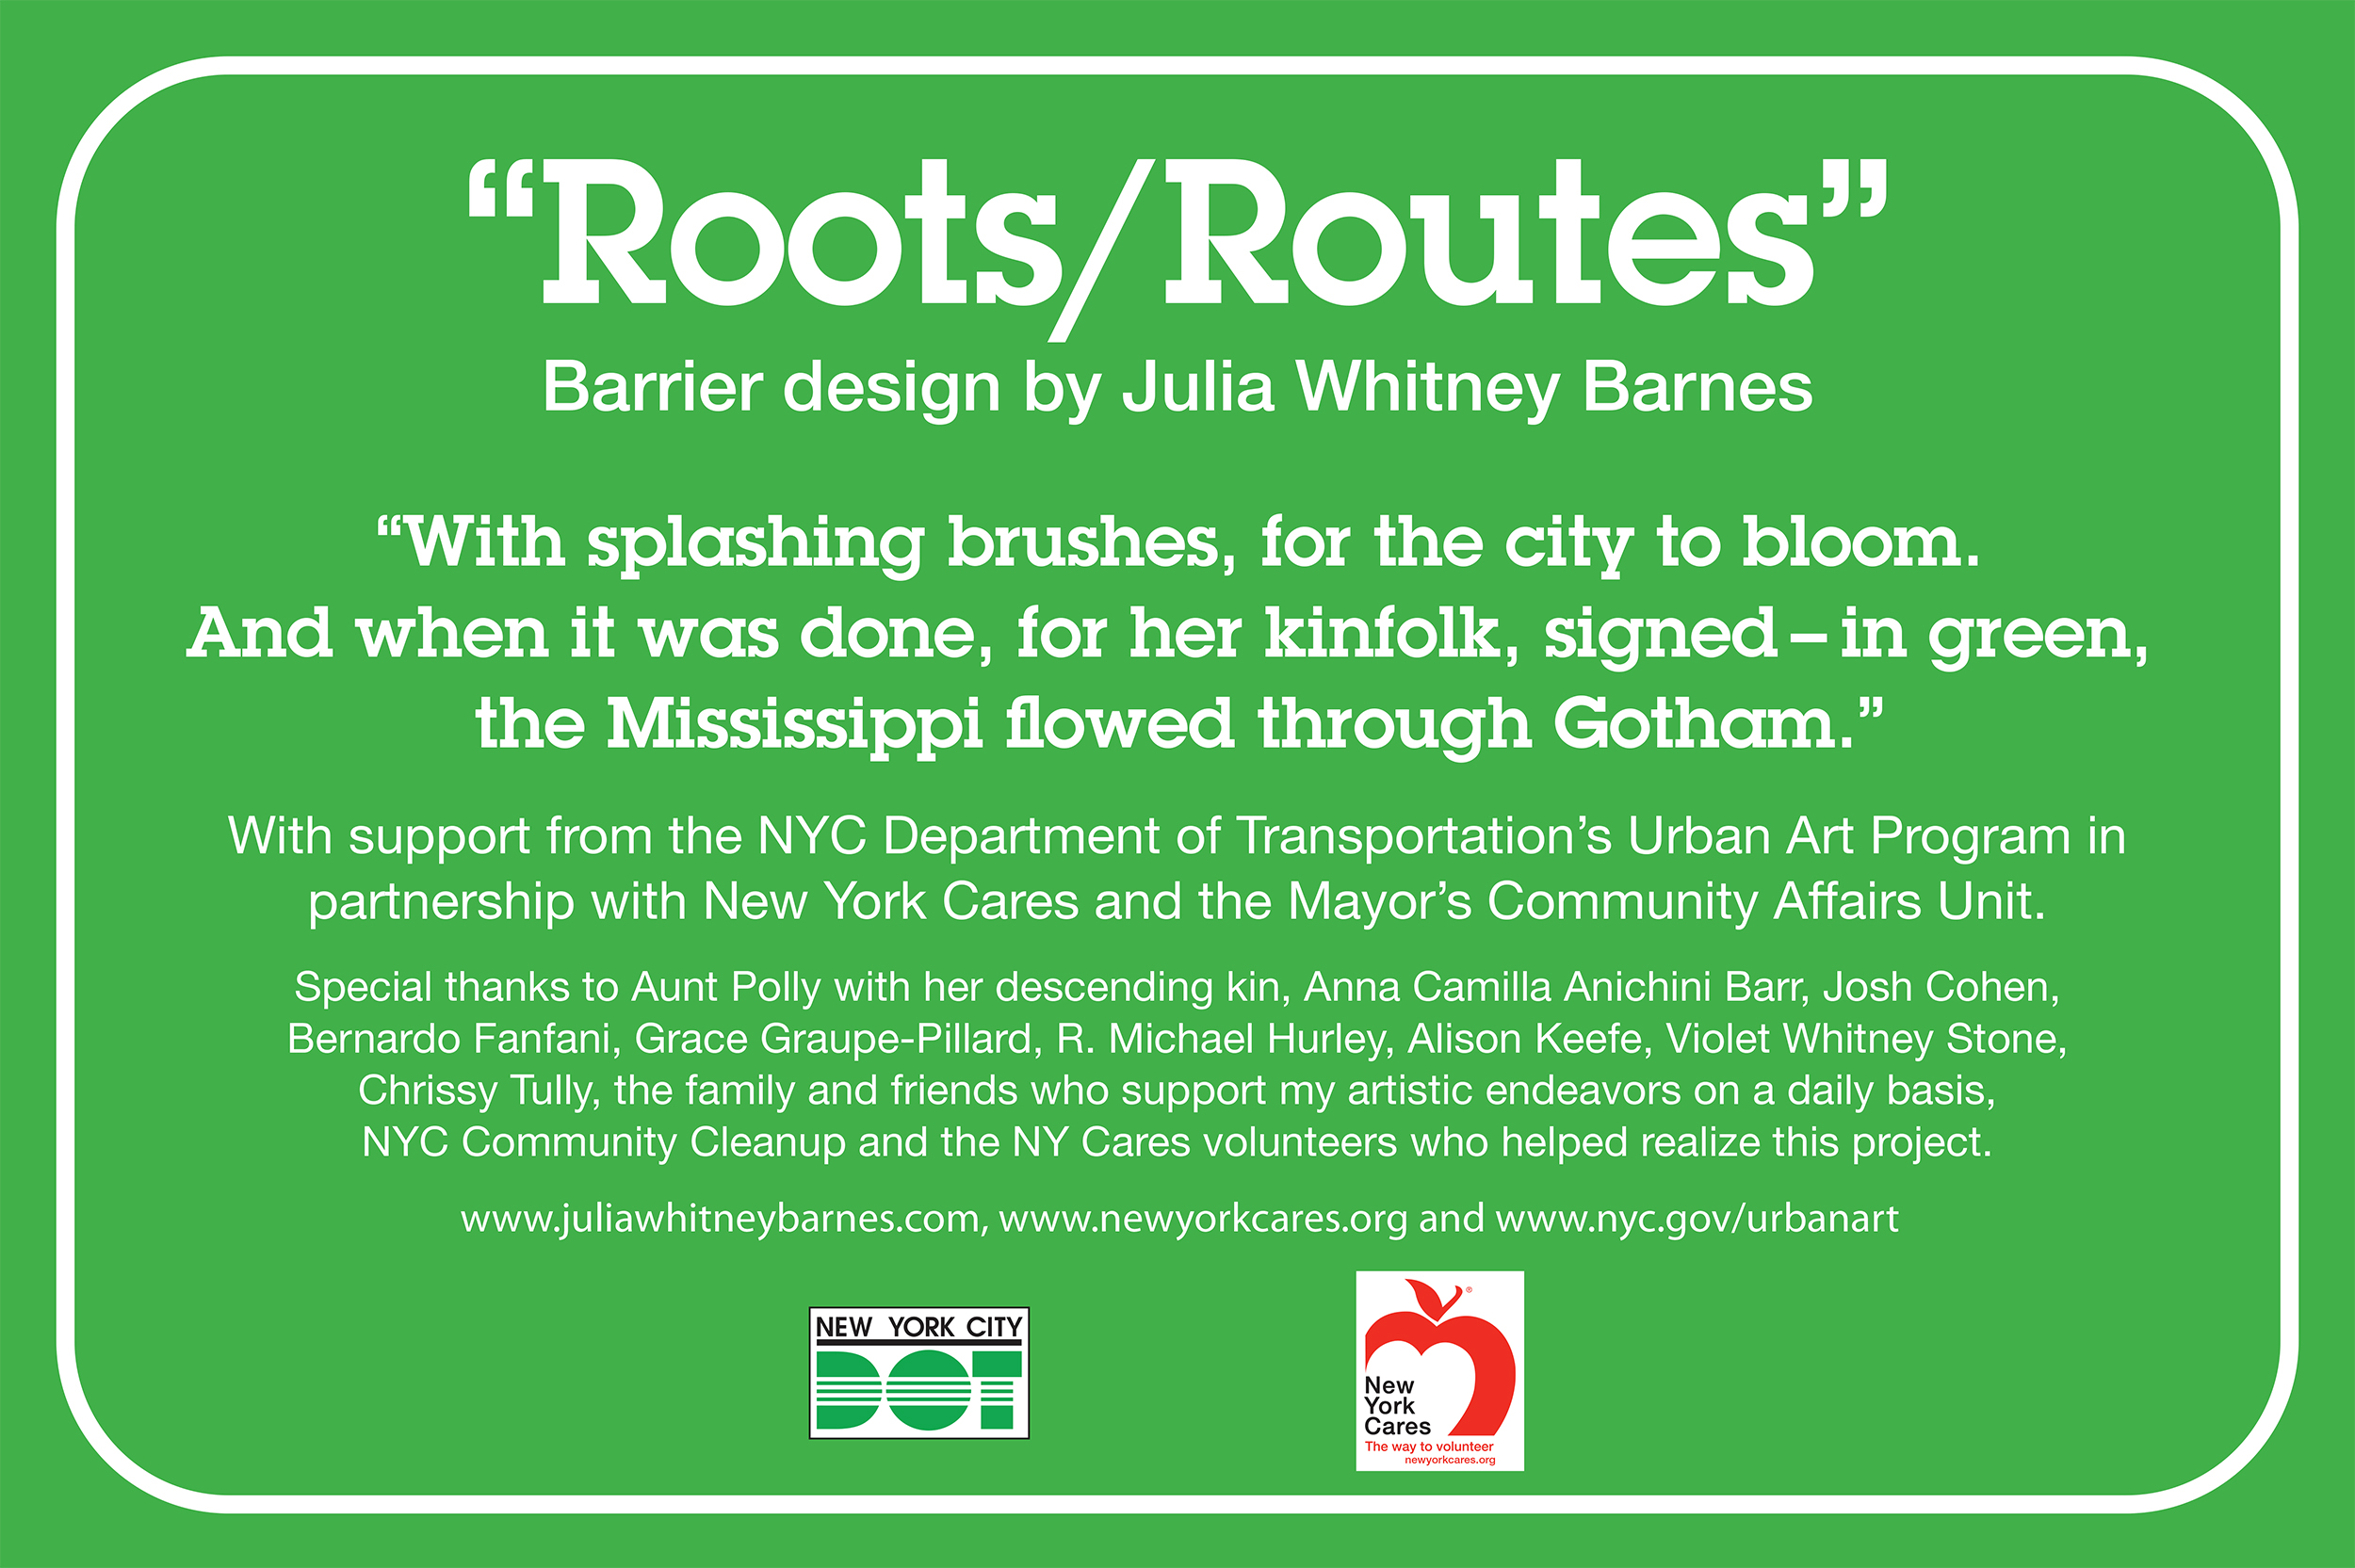 Roots/Routes (signage)